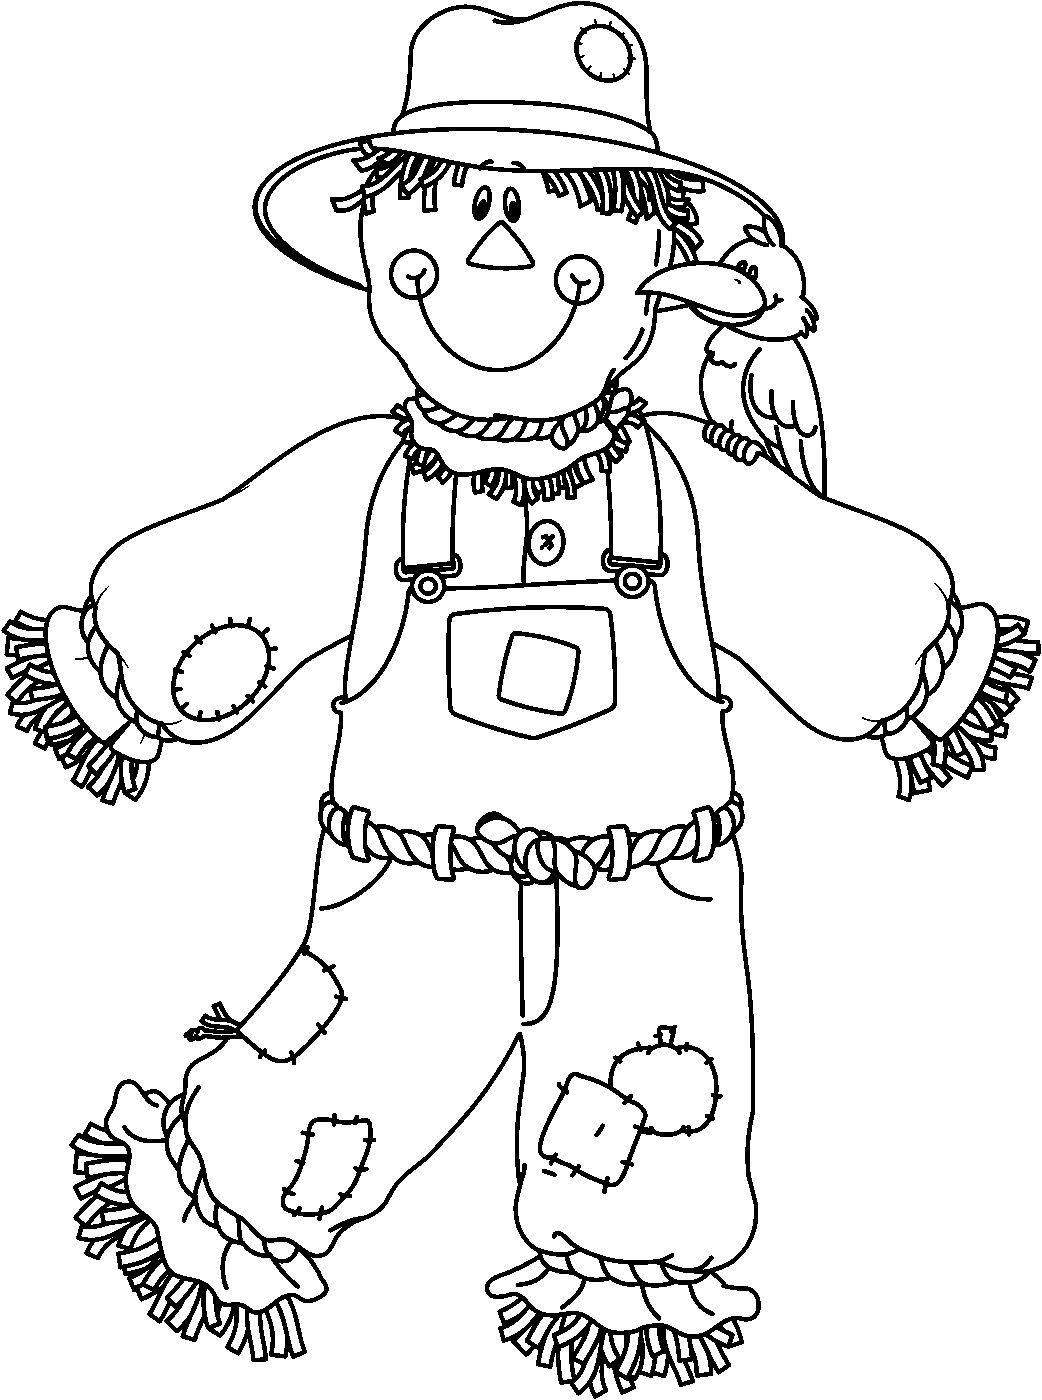 Perfect Halloween Coloring Pages Following Rustic Article | Coloring ...